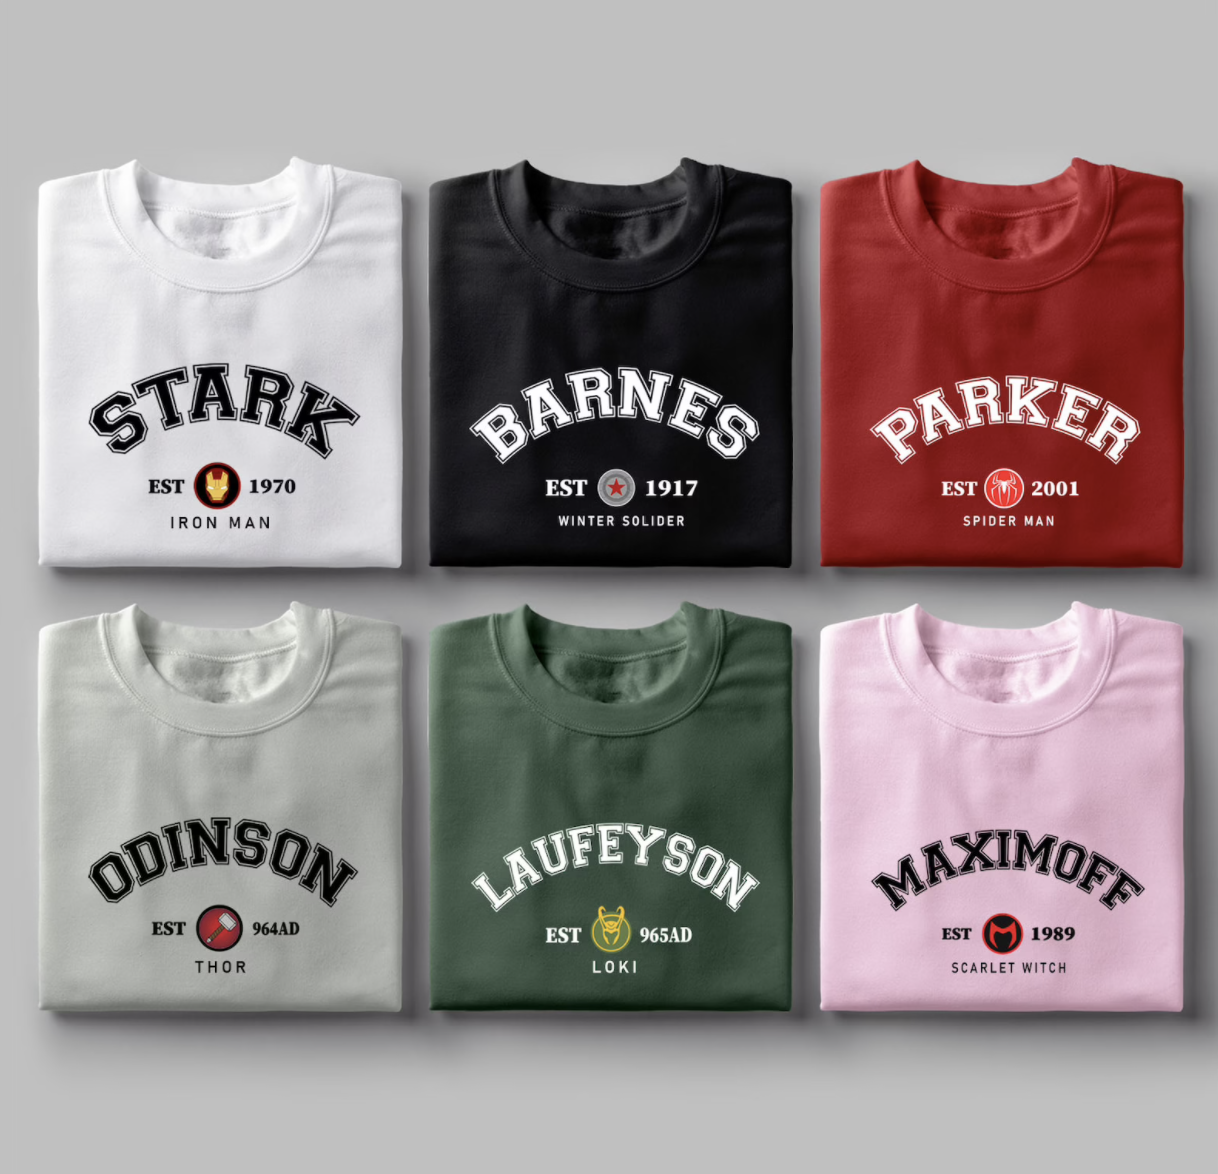 """Sweatshirts with different Marvel characters' last names and """"EST"""" with the year on them"""